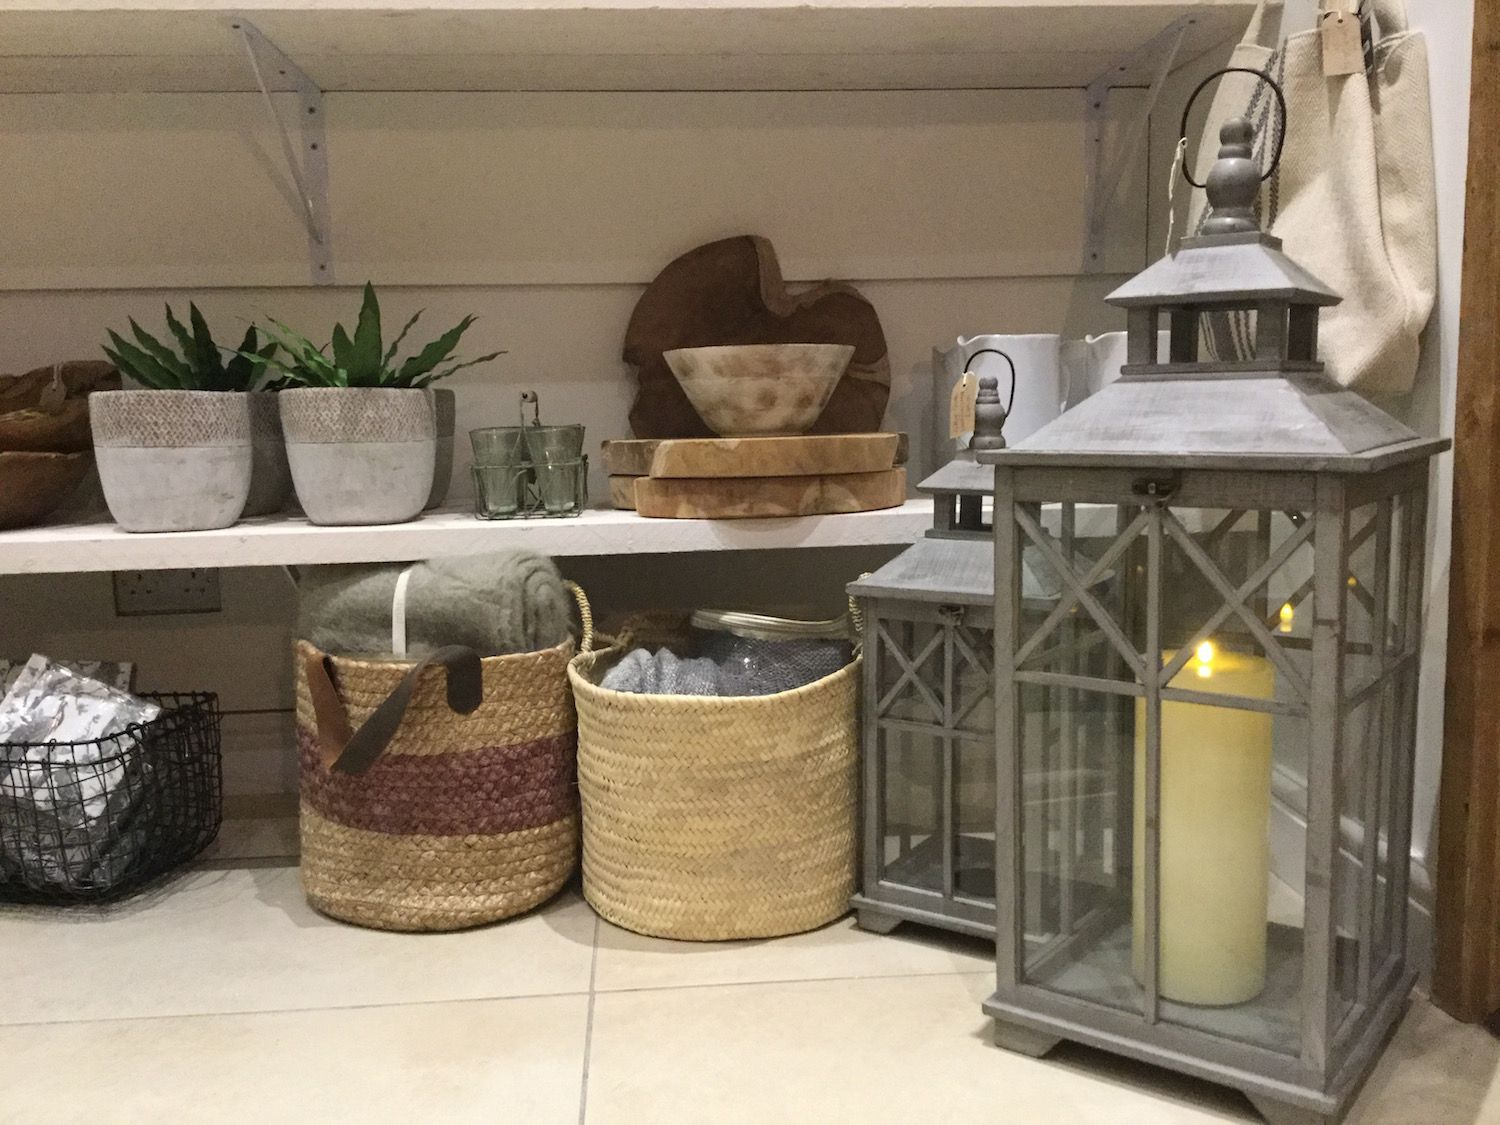 lamps, pots and baskets